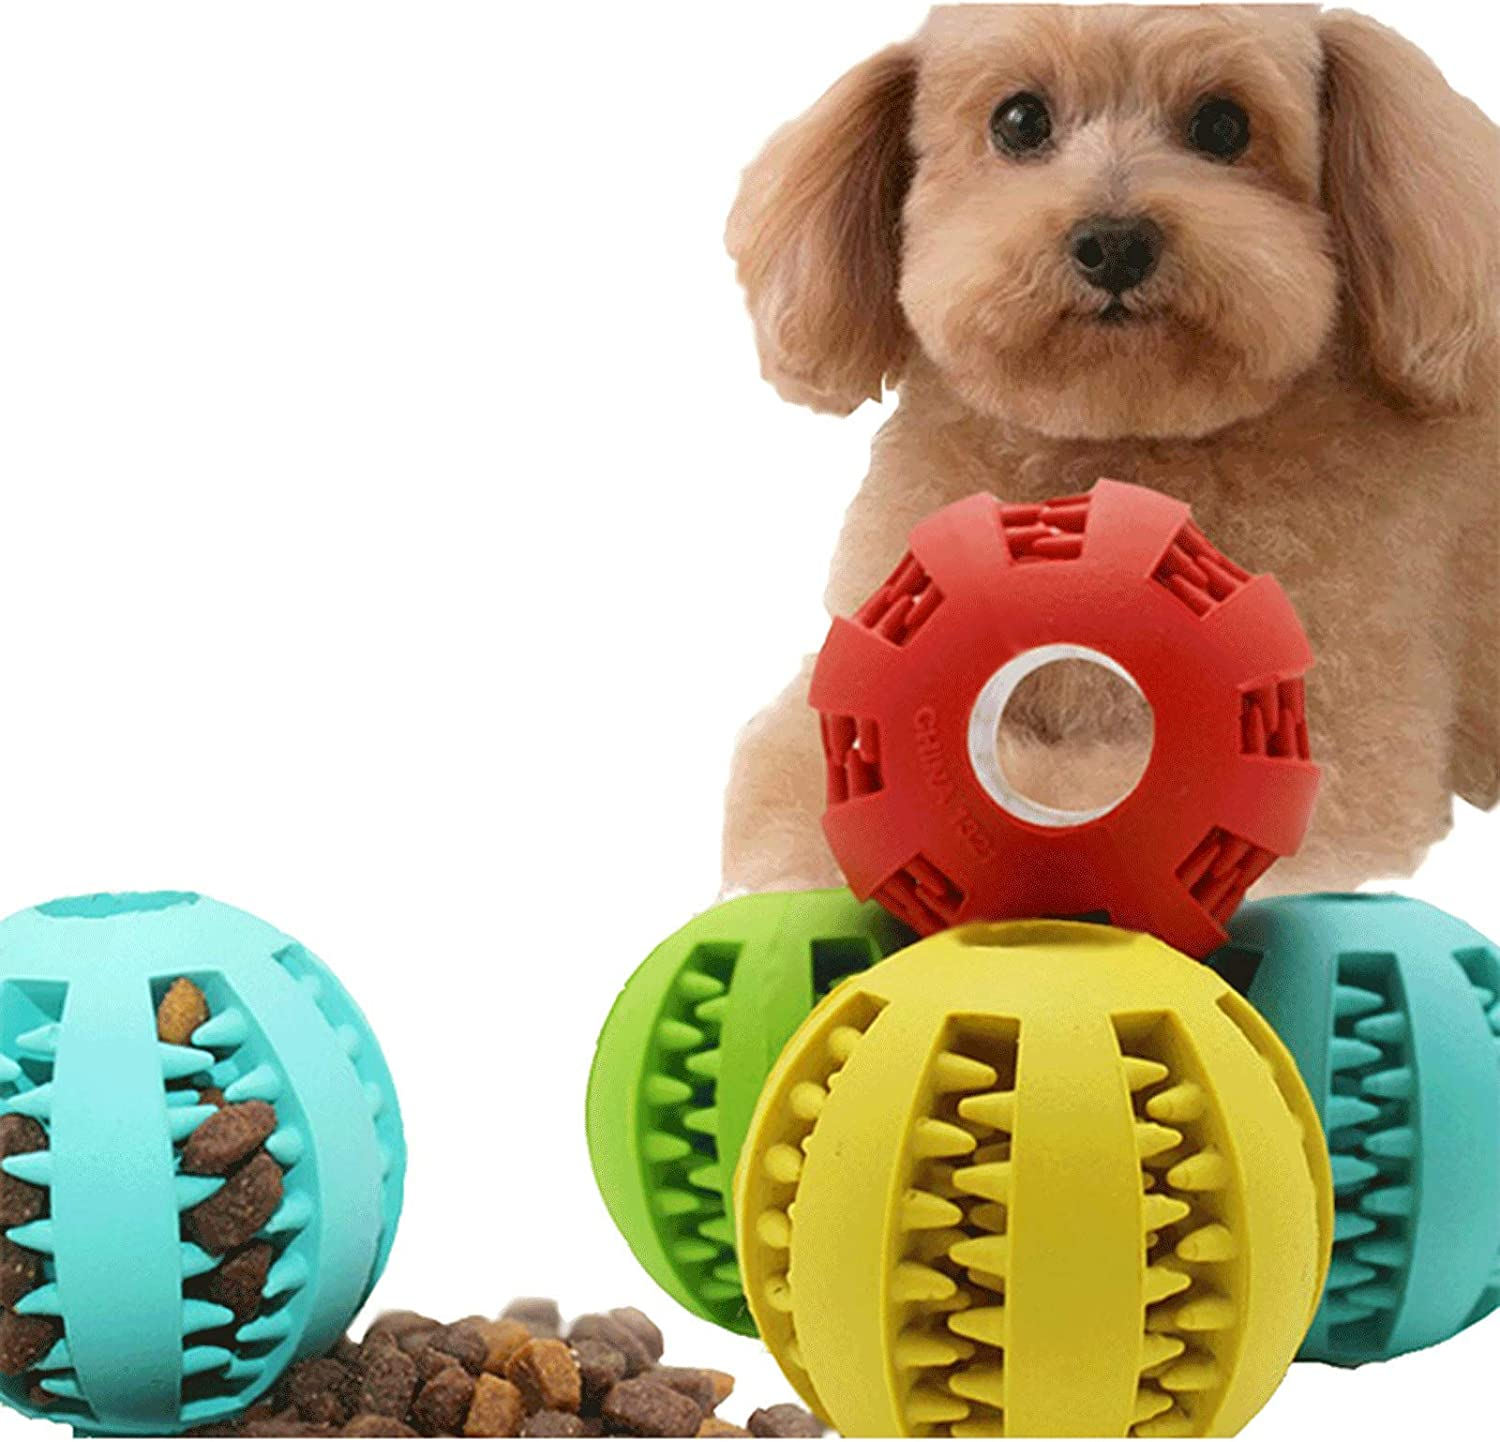 Pet Dog Ball Toys, Used for pet Teeth Cleaning, Chewing, Taking Things, IQ Treatment Ball Food Distribution Toys (Green)